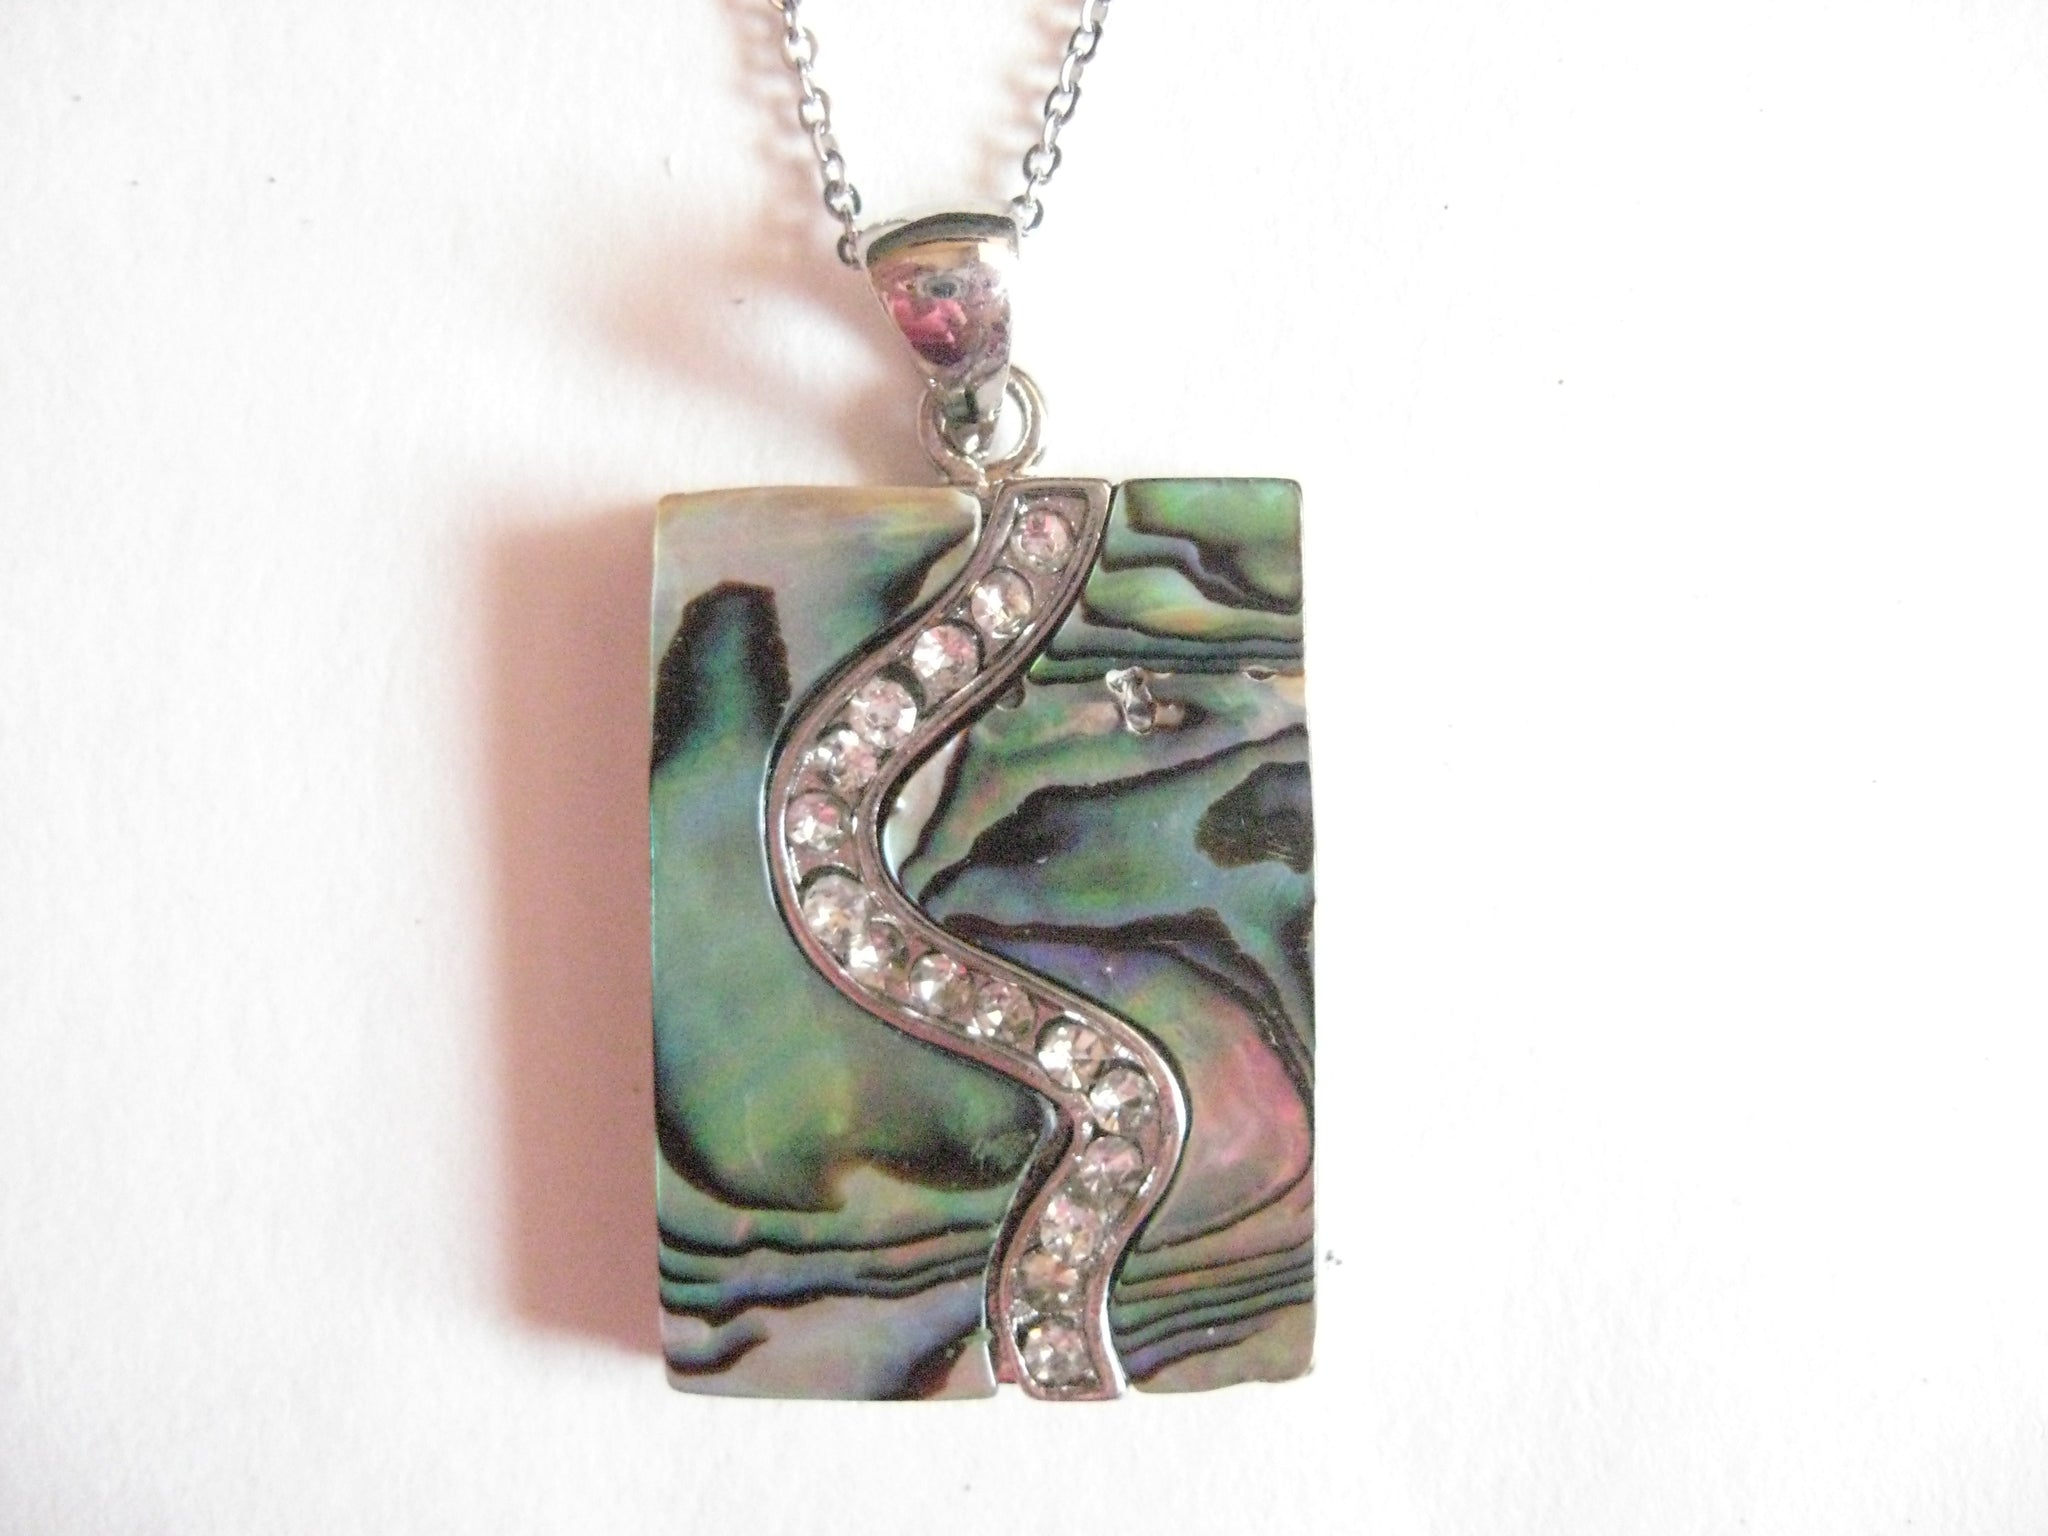 Abalone Shell Pendant Necklace on Stainless Steel Chain - Rectangle with Crystals